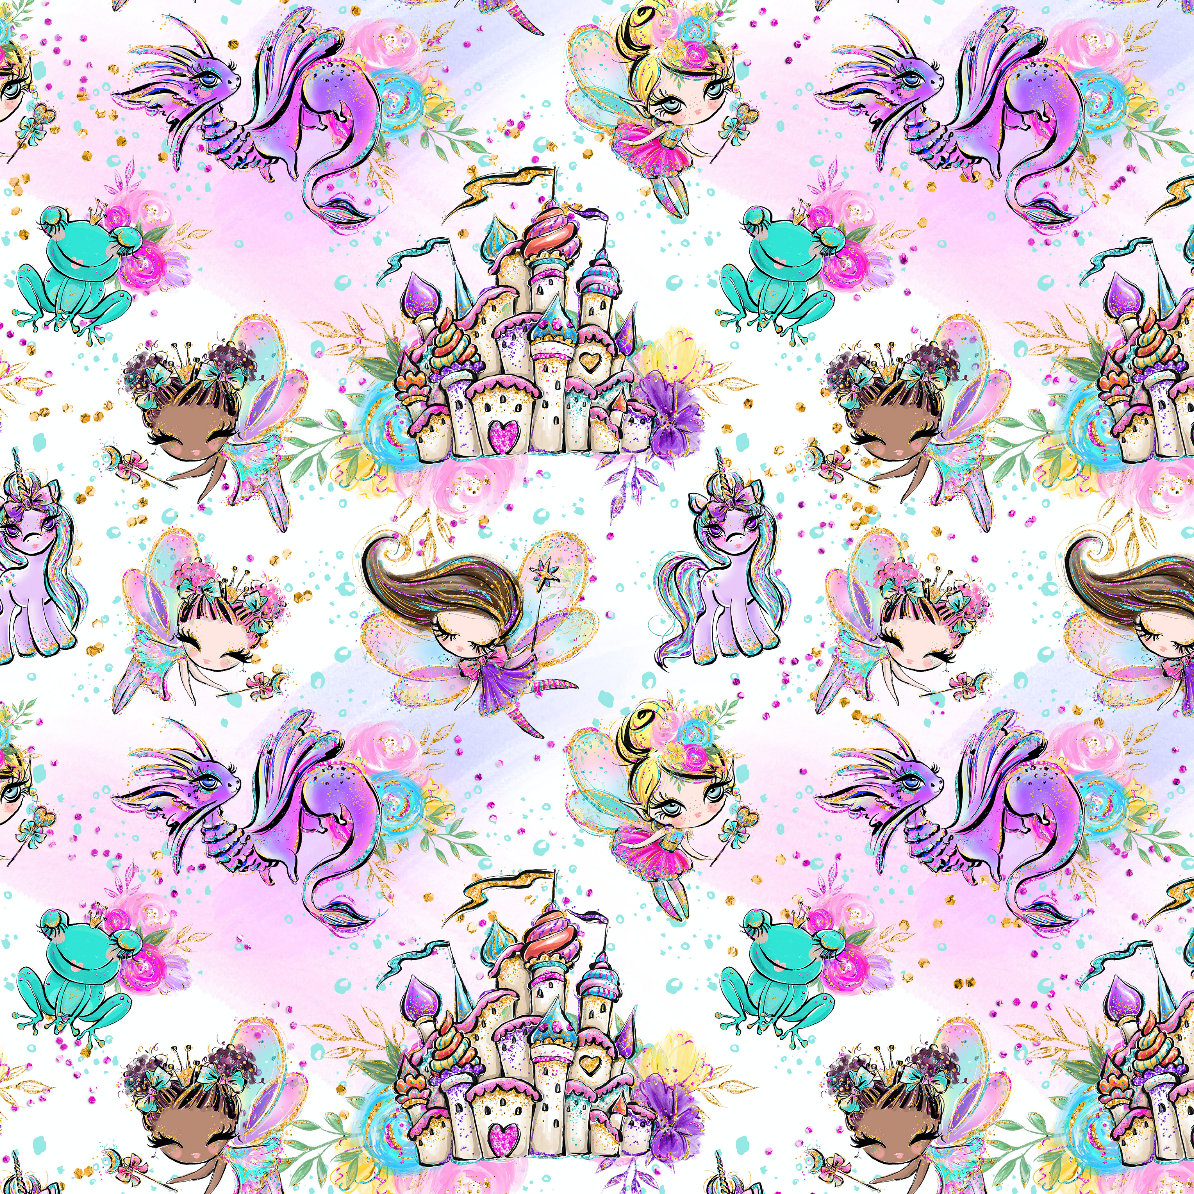 PRE ORDER - Land of Magic White - Digital Fabric Print